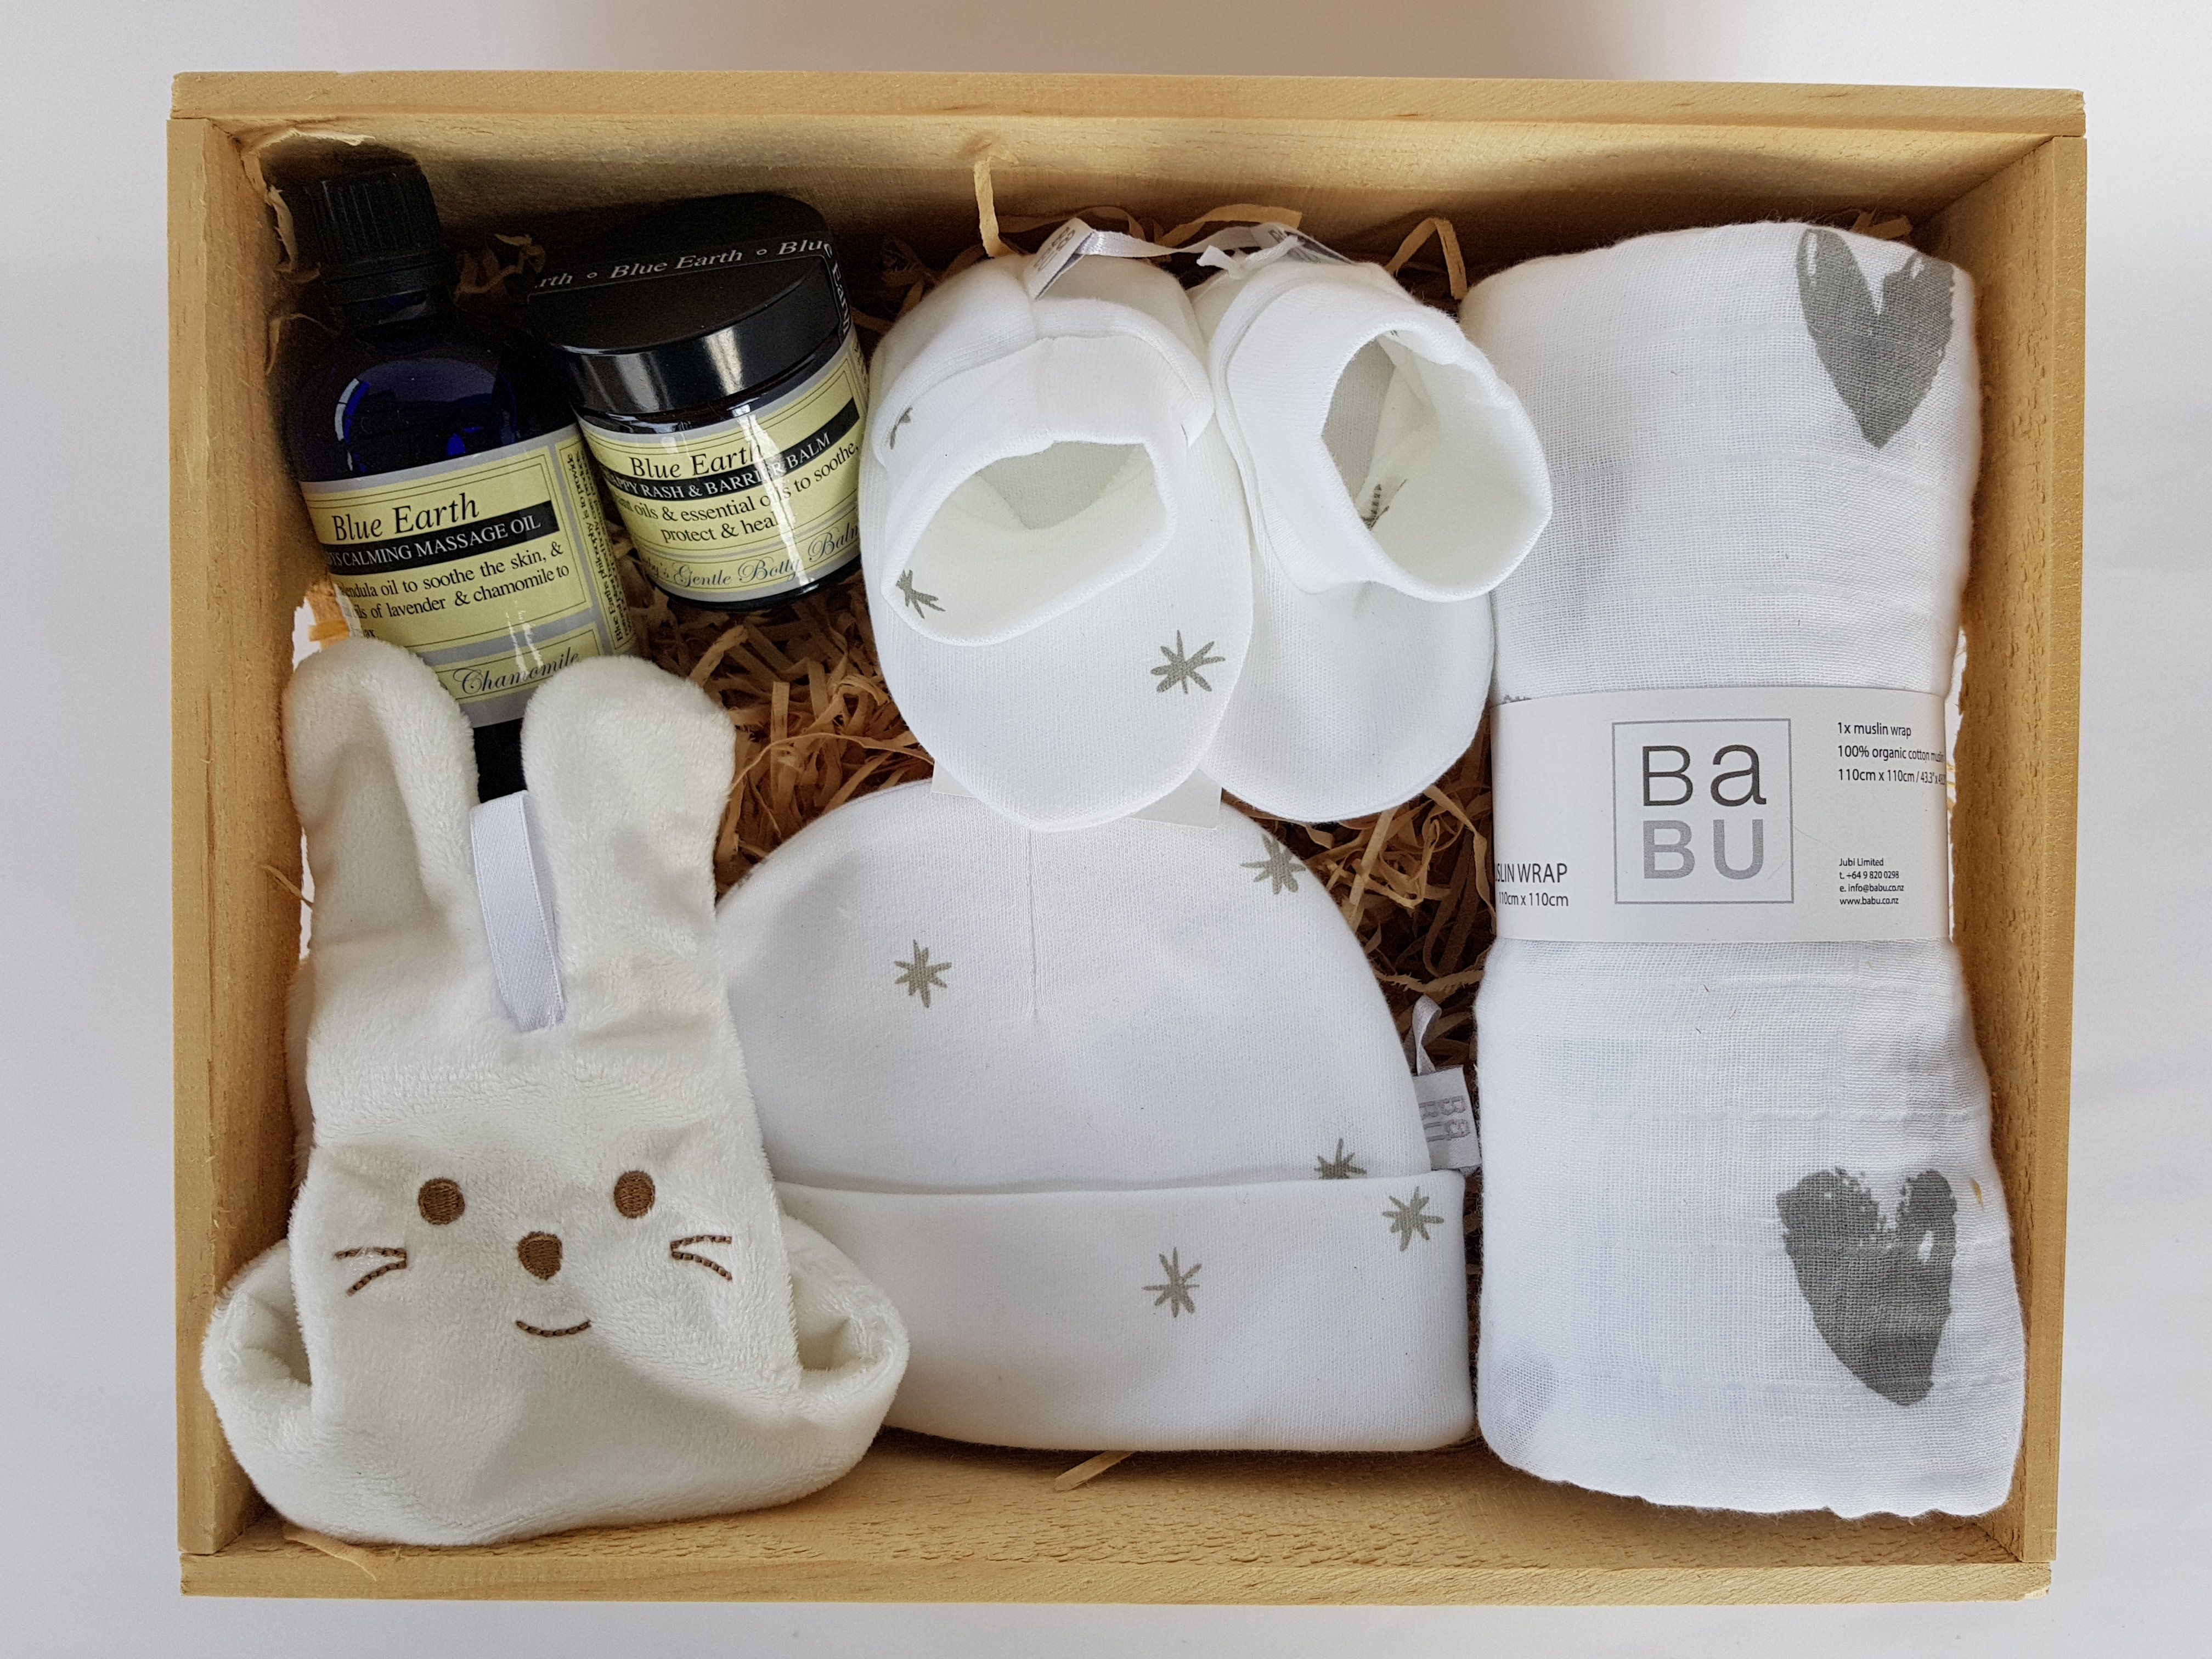 Baby Gift Box Hamper Nz Online Gifts Easy Delivery Nz Wide